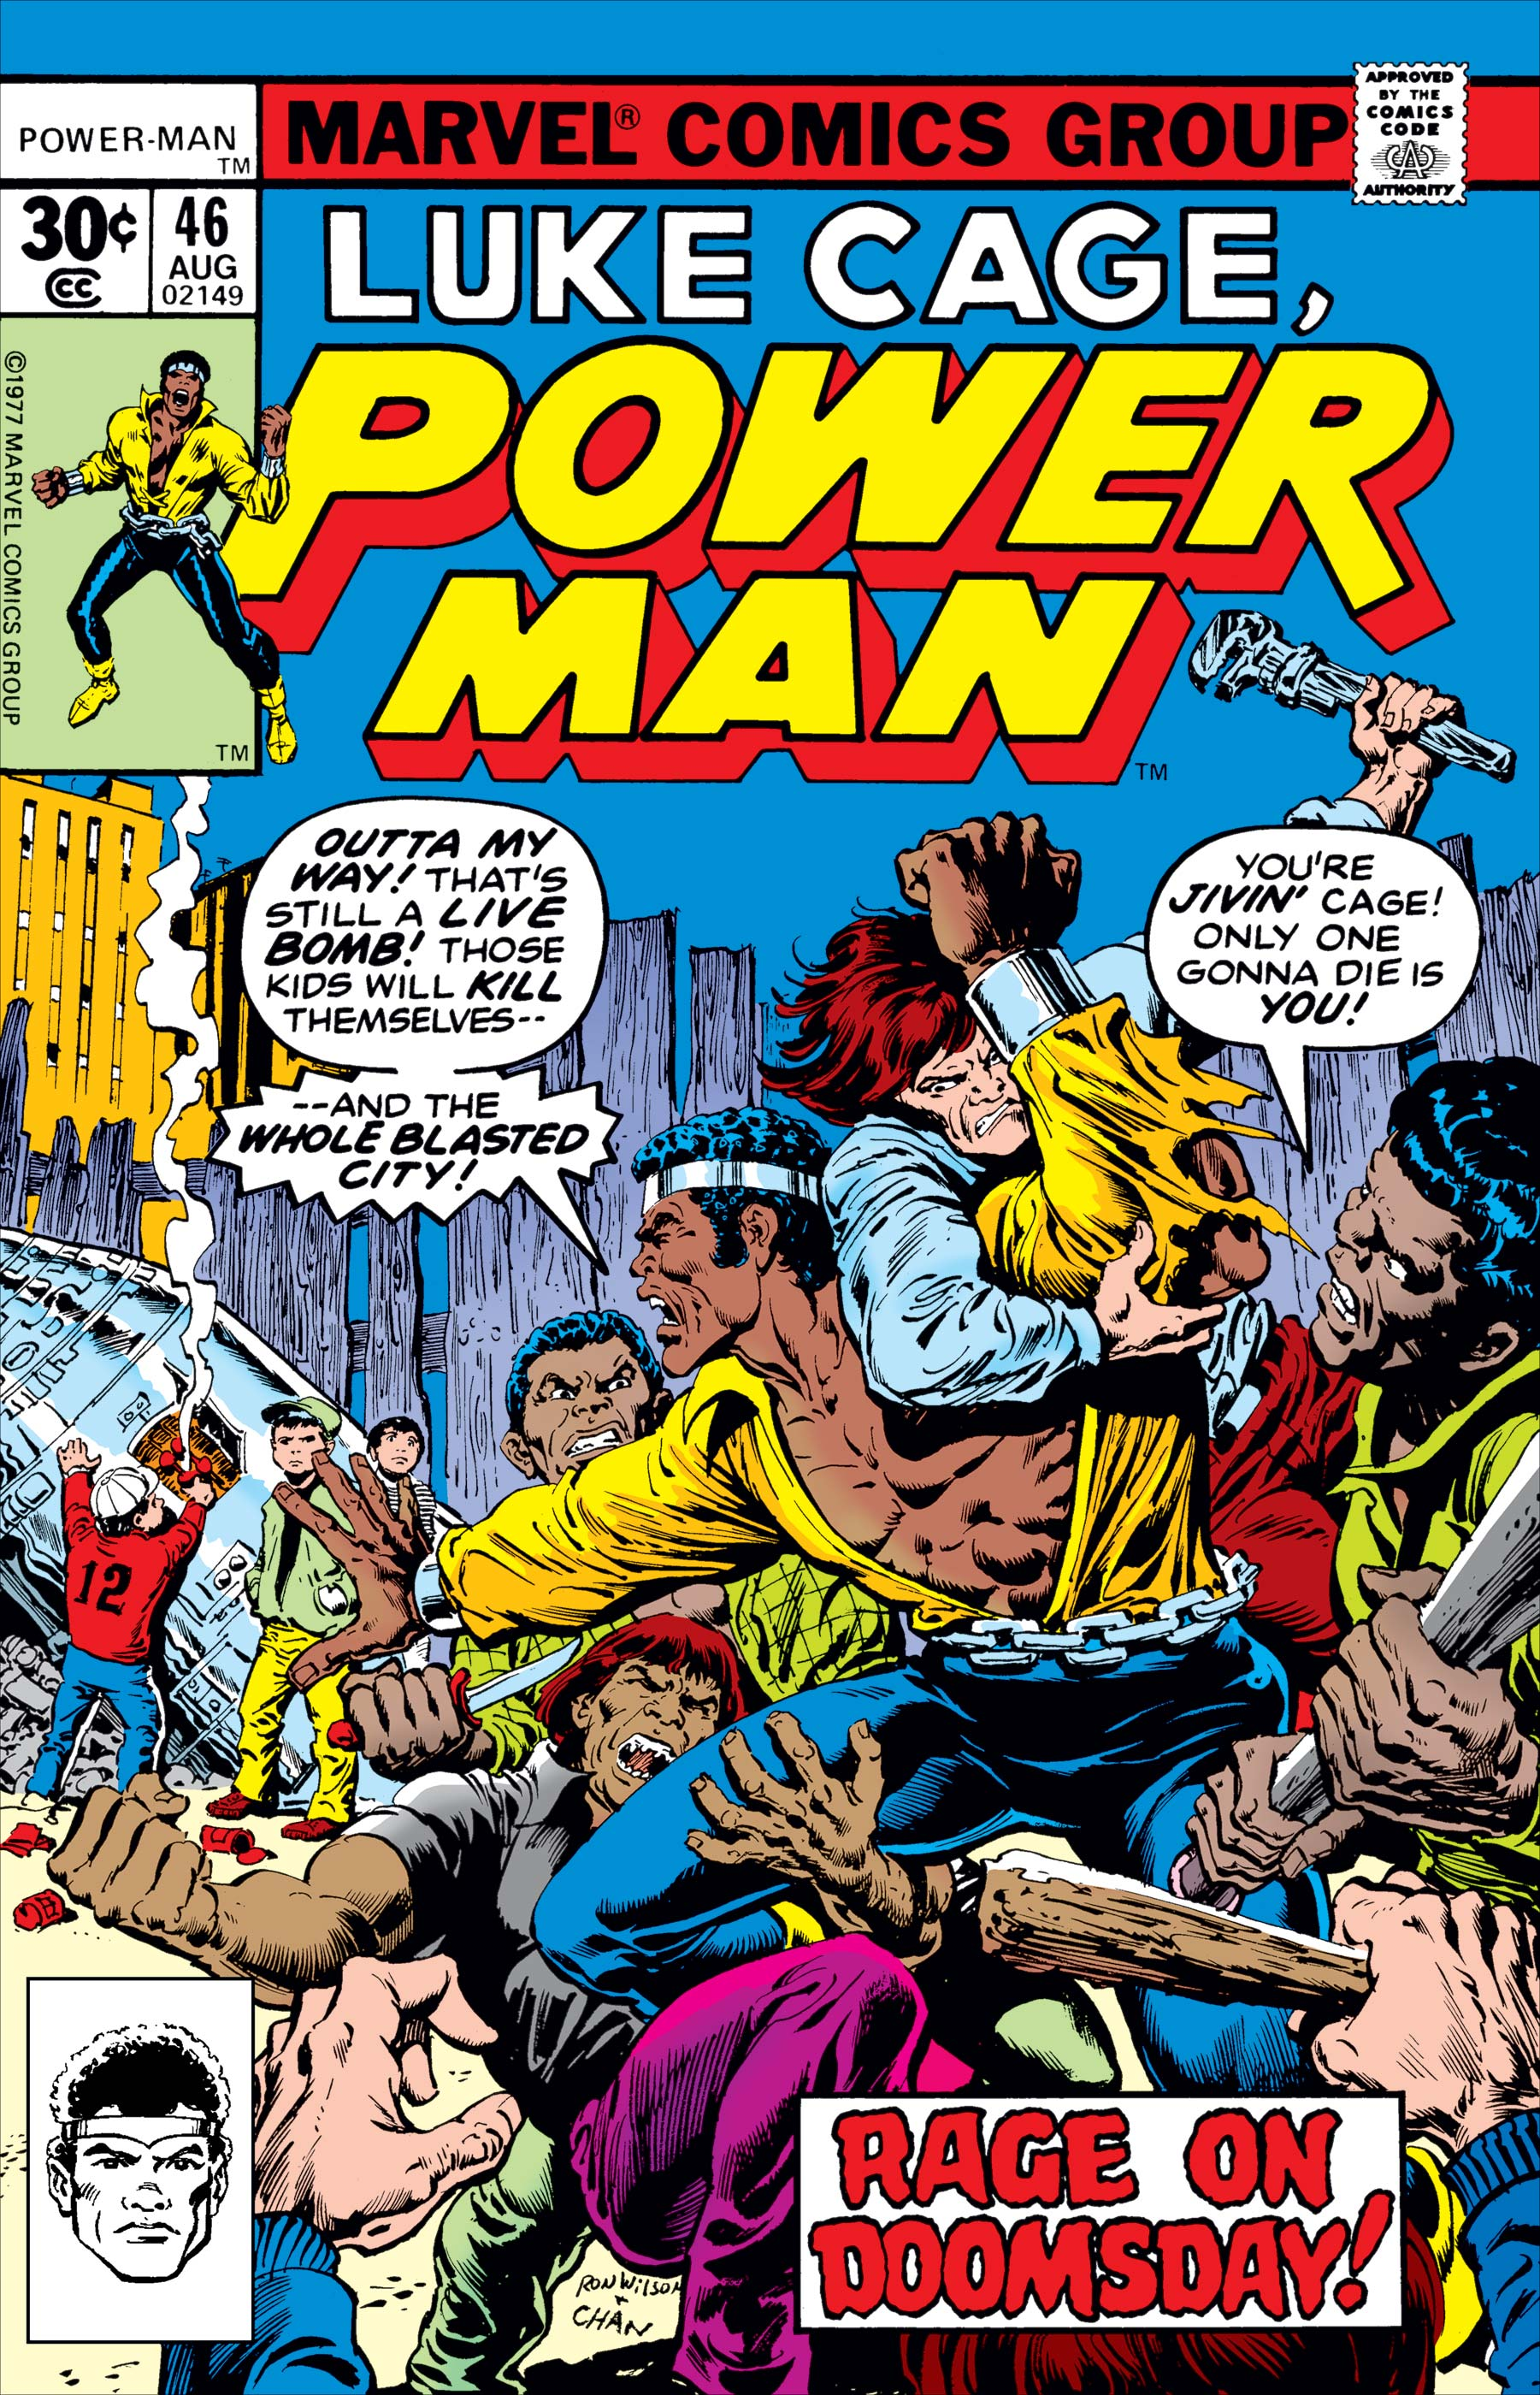 Power Man (1974) #46